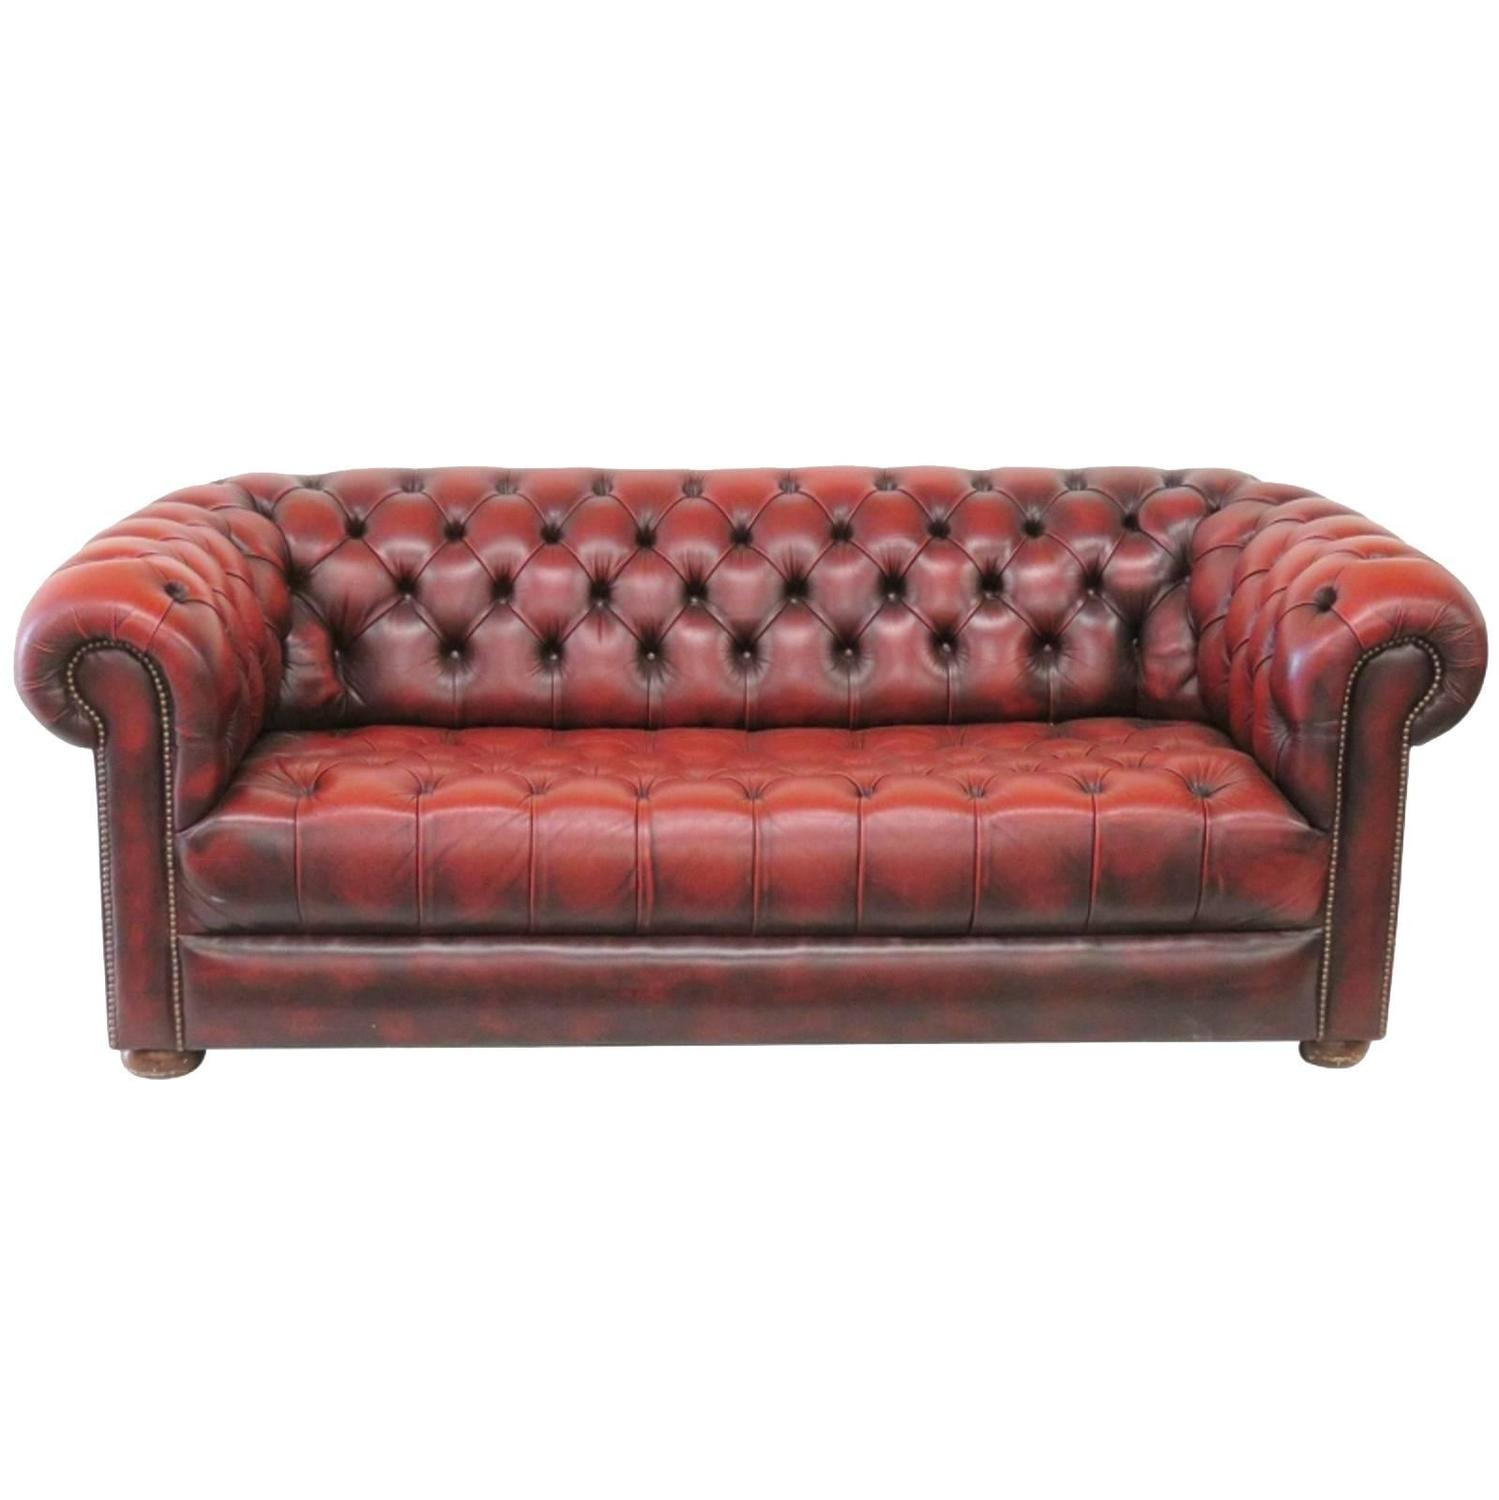 Tufted Red Leather Chesterfield Sofa At 1stdibs